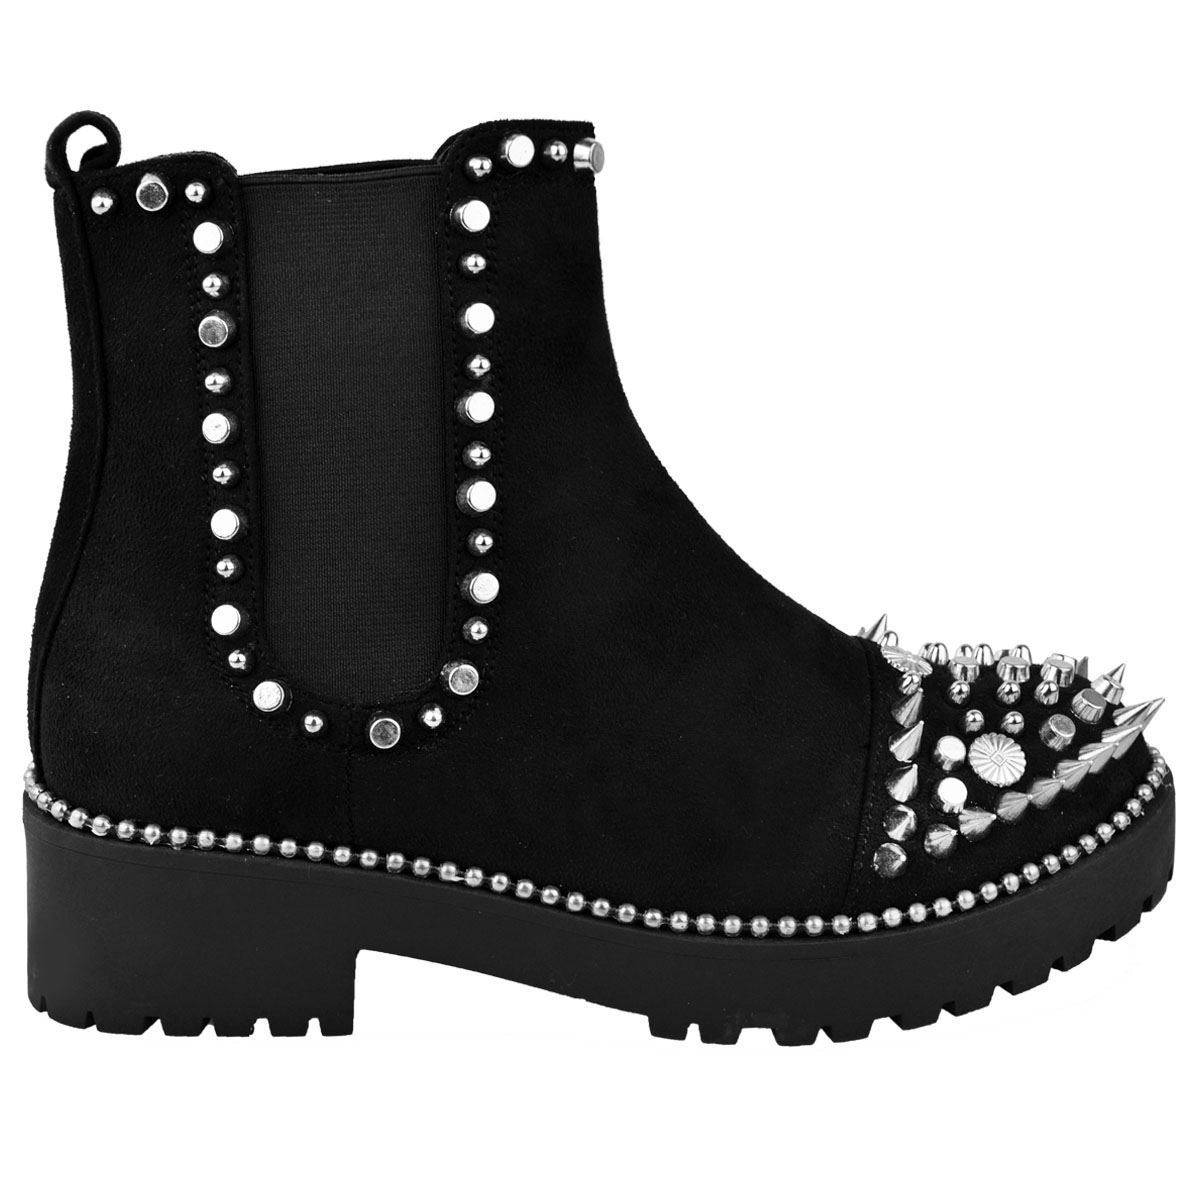 Womens-Ladies-Flat-Ankle-Boots-Studded-Spike-Grunge-Comfy-Thick-Sole-Shoes-Size